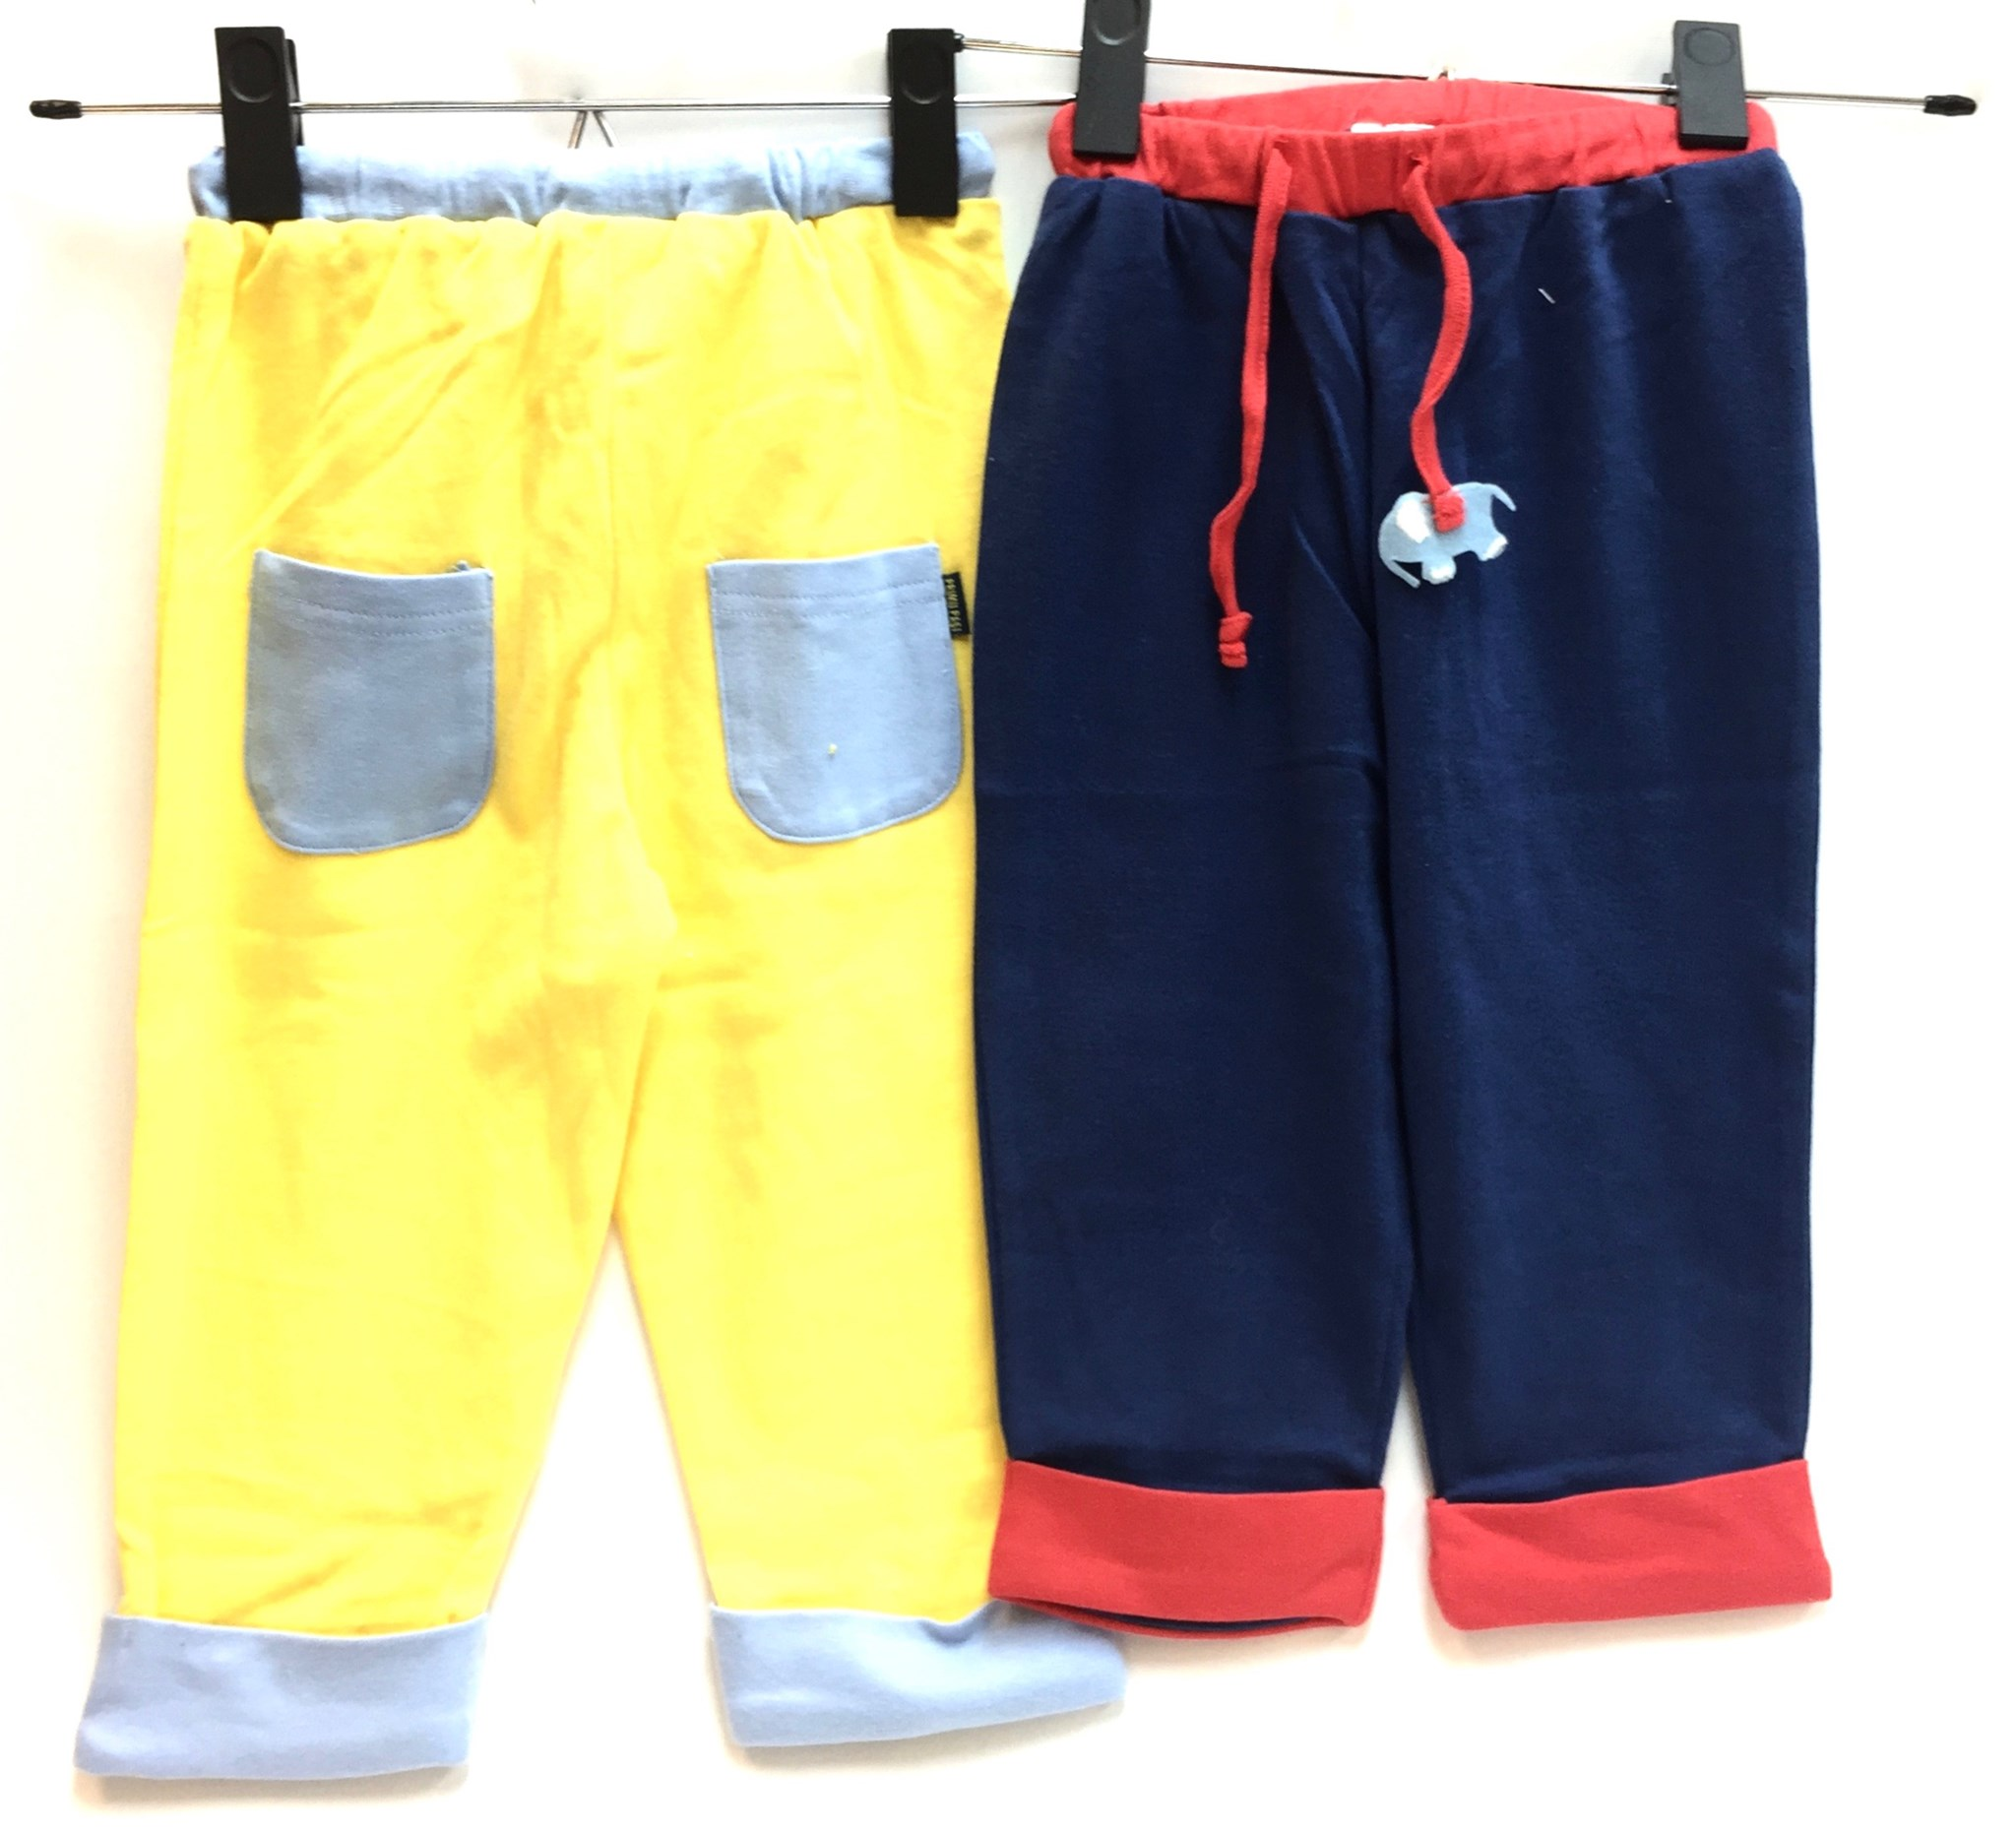 (IBWK511) Cotton Pants Blue/Yellow 2/A